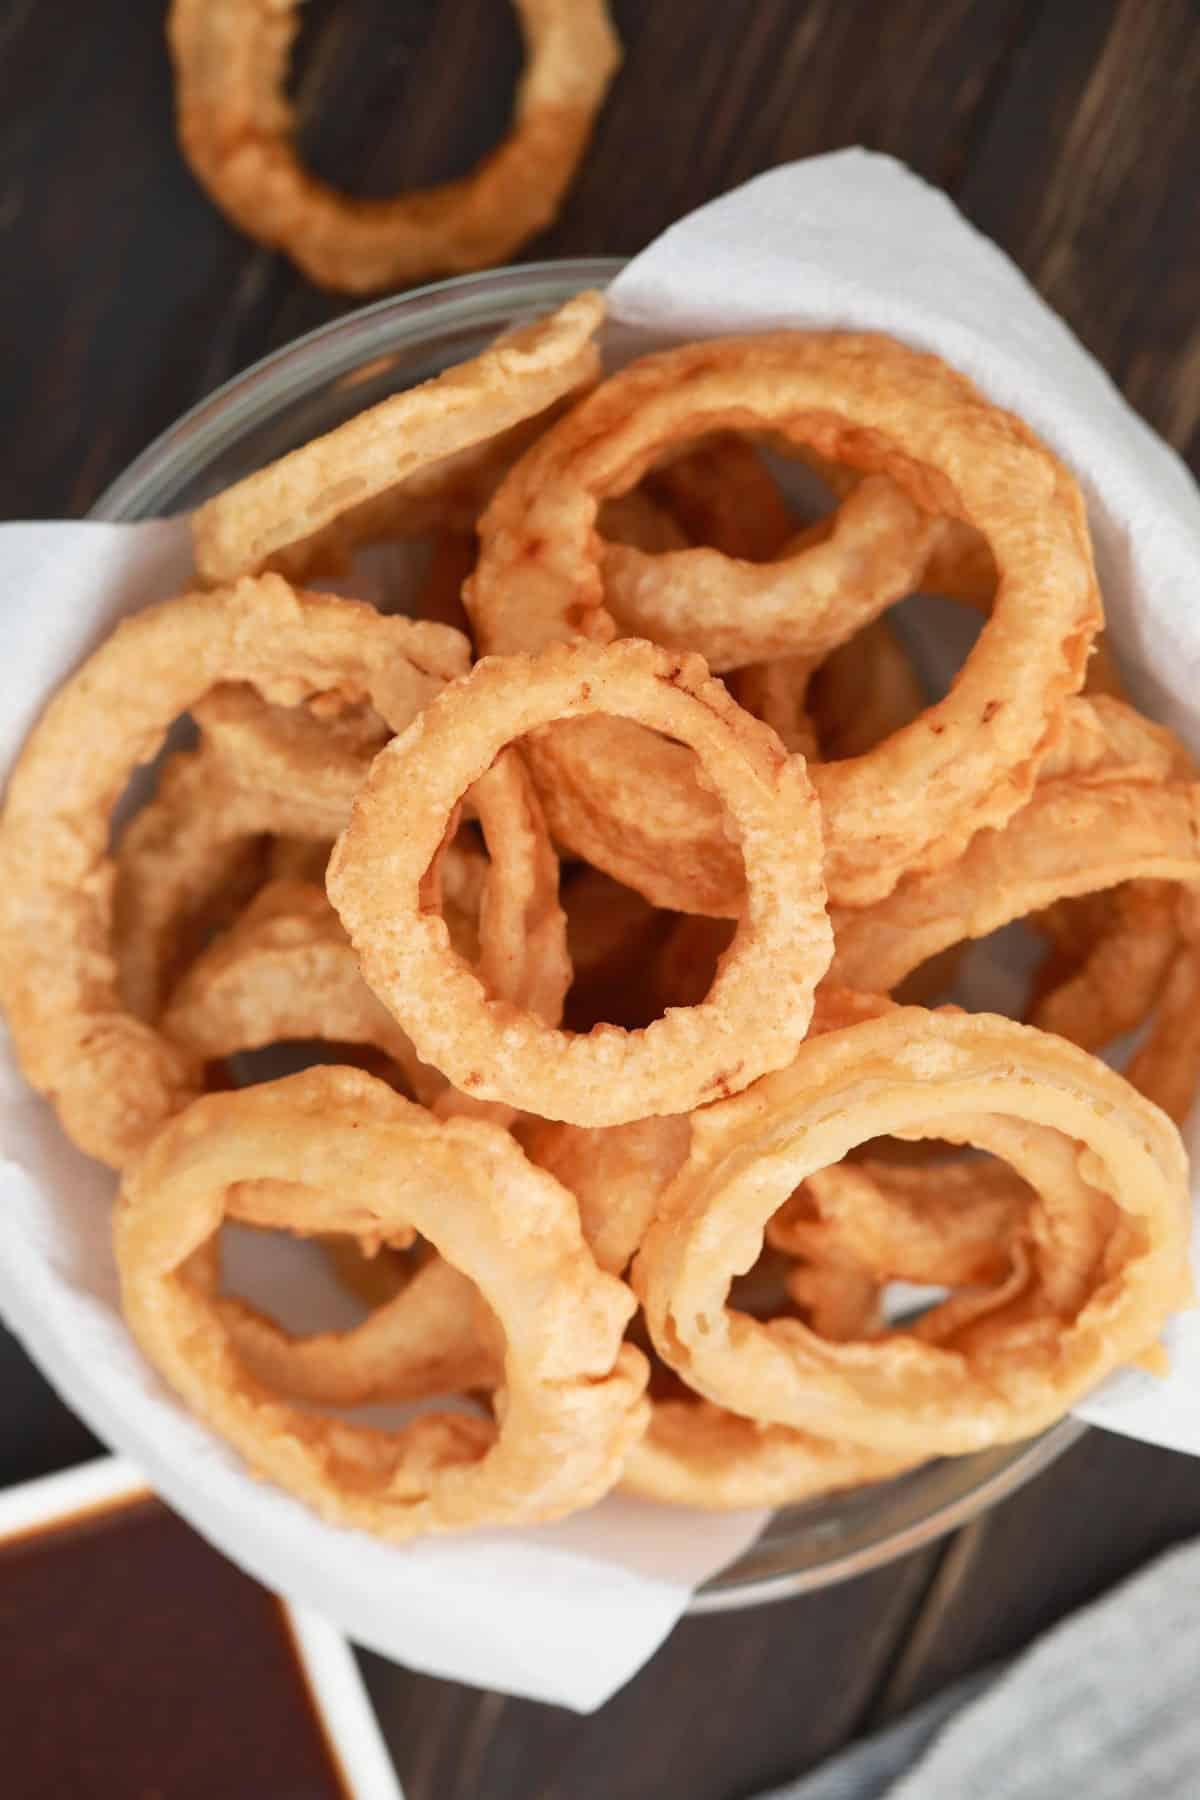 Overhead of a basket of onion rings